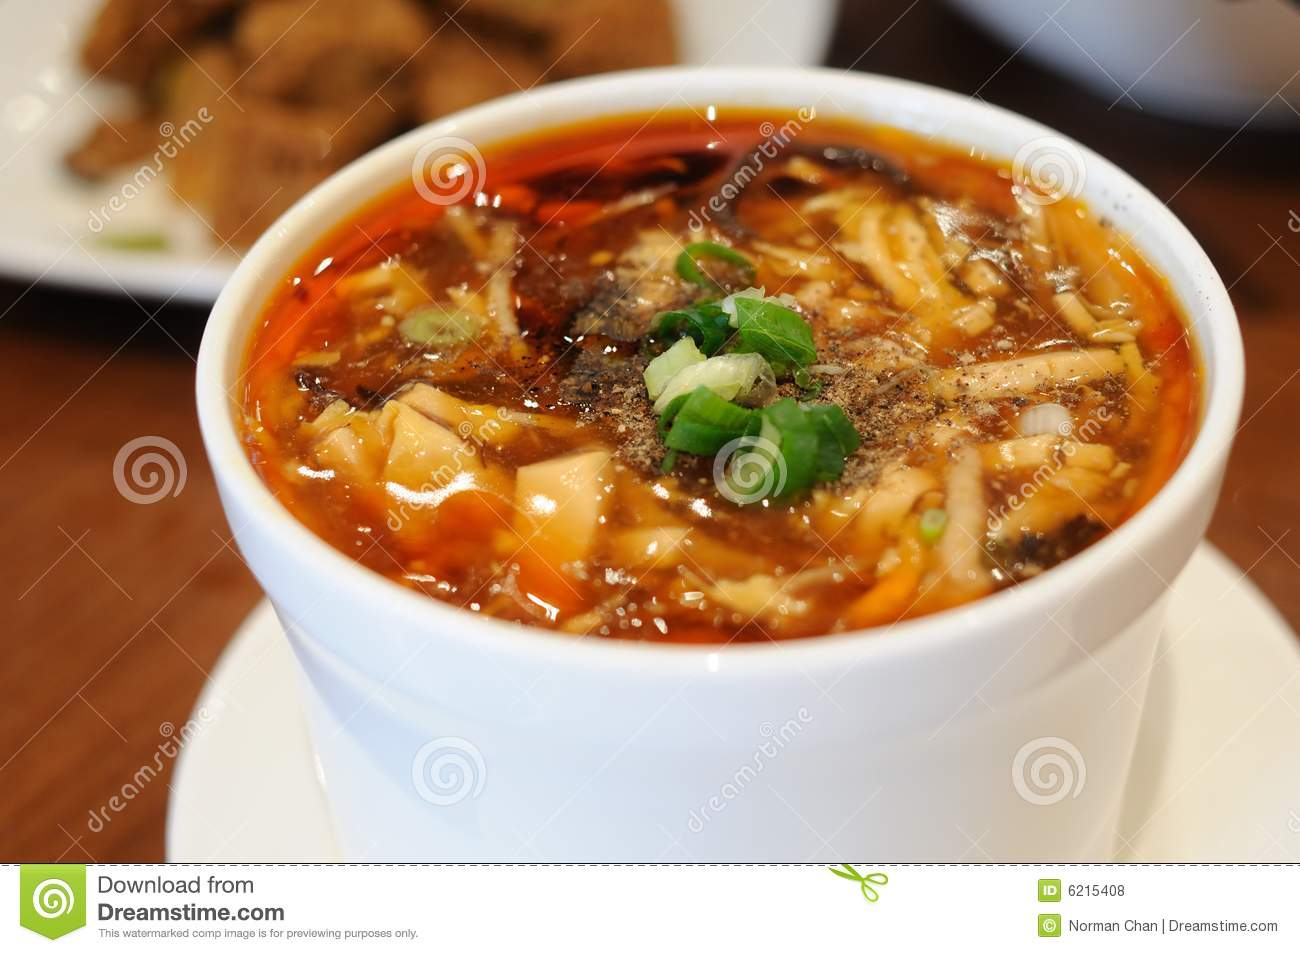 Hot And Sour Soup Royalty Free Stock Photos - Image: 6215408